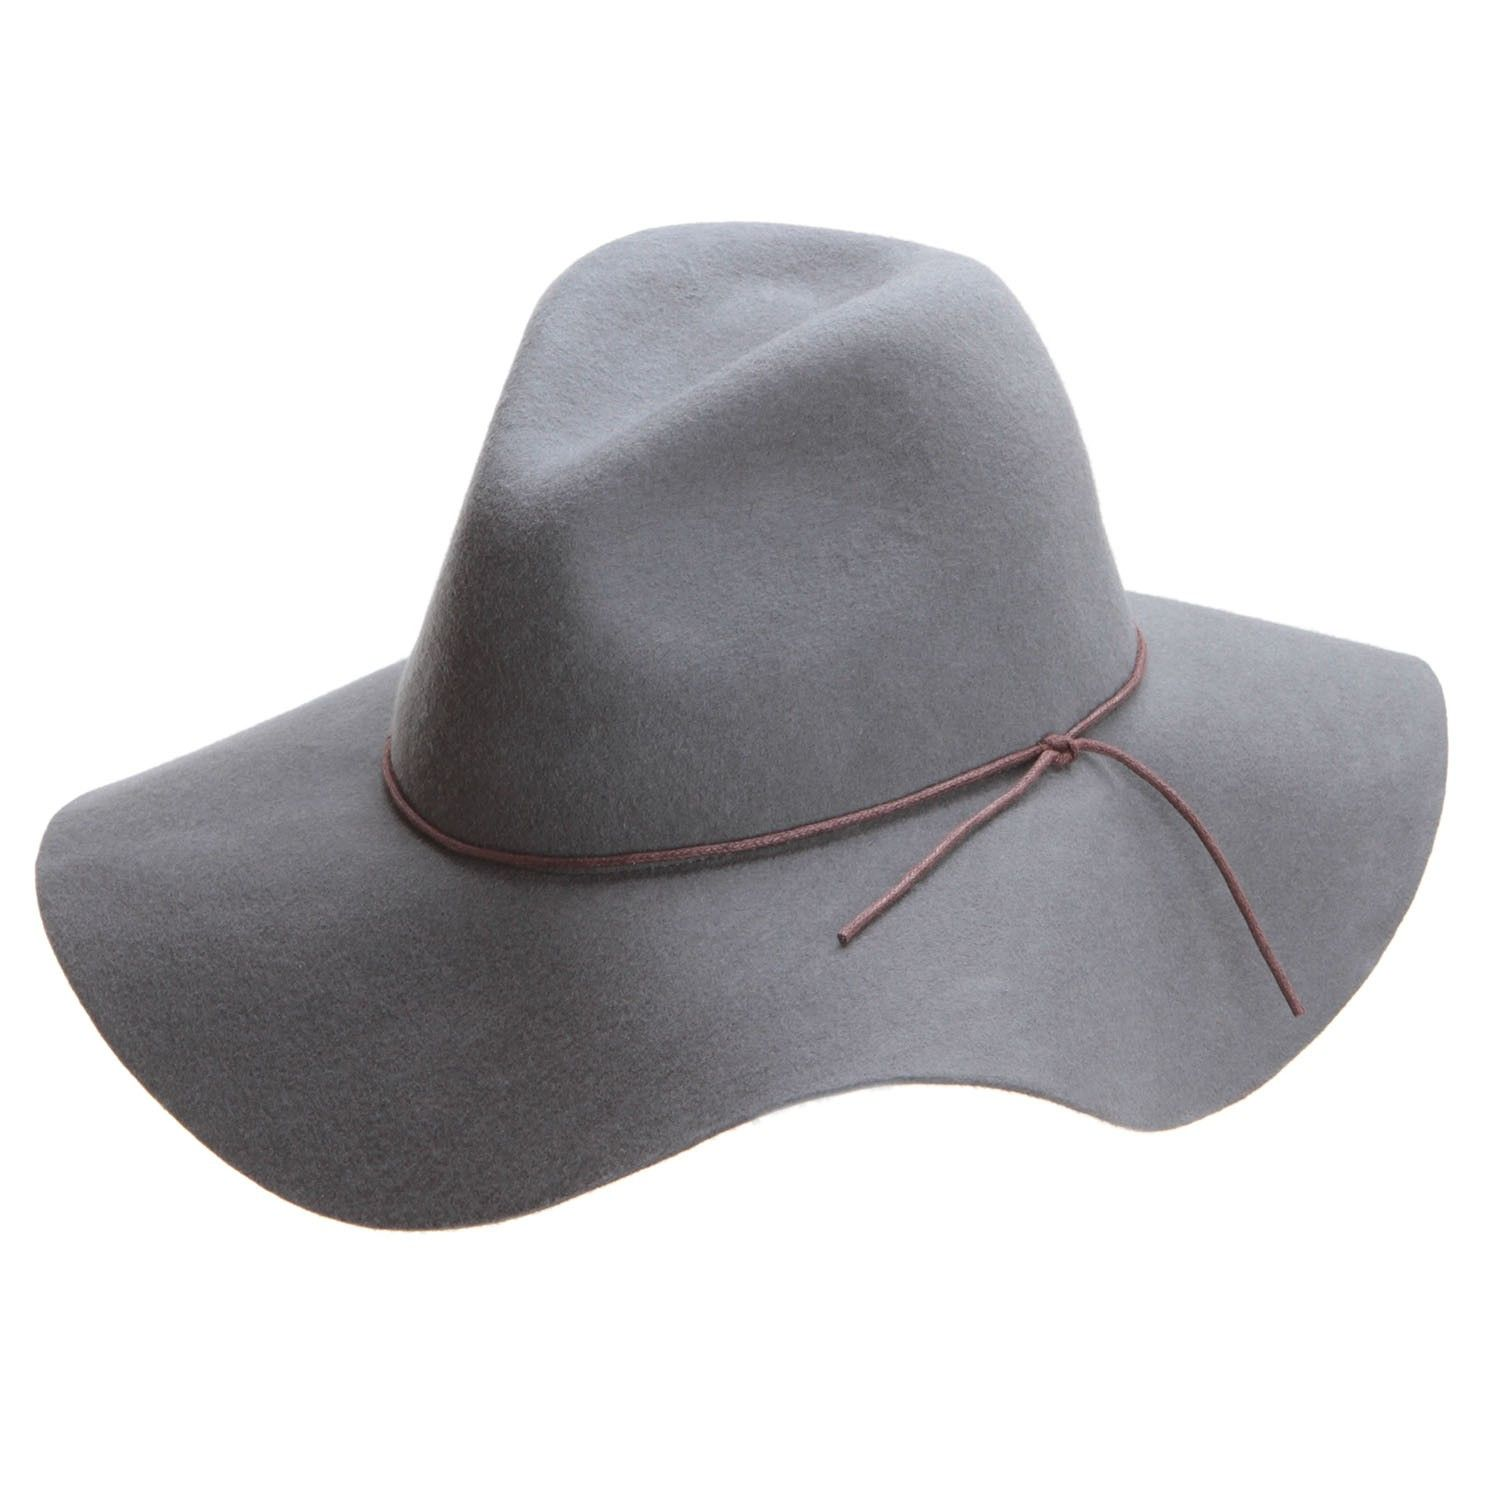 Peter grimm womens wide brimmed hats grey cowgirl hats brim hat